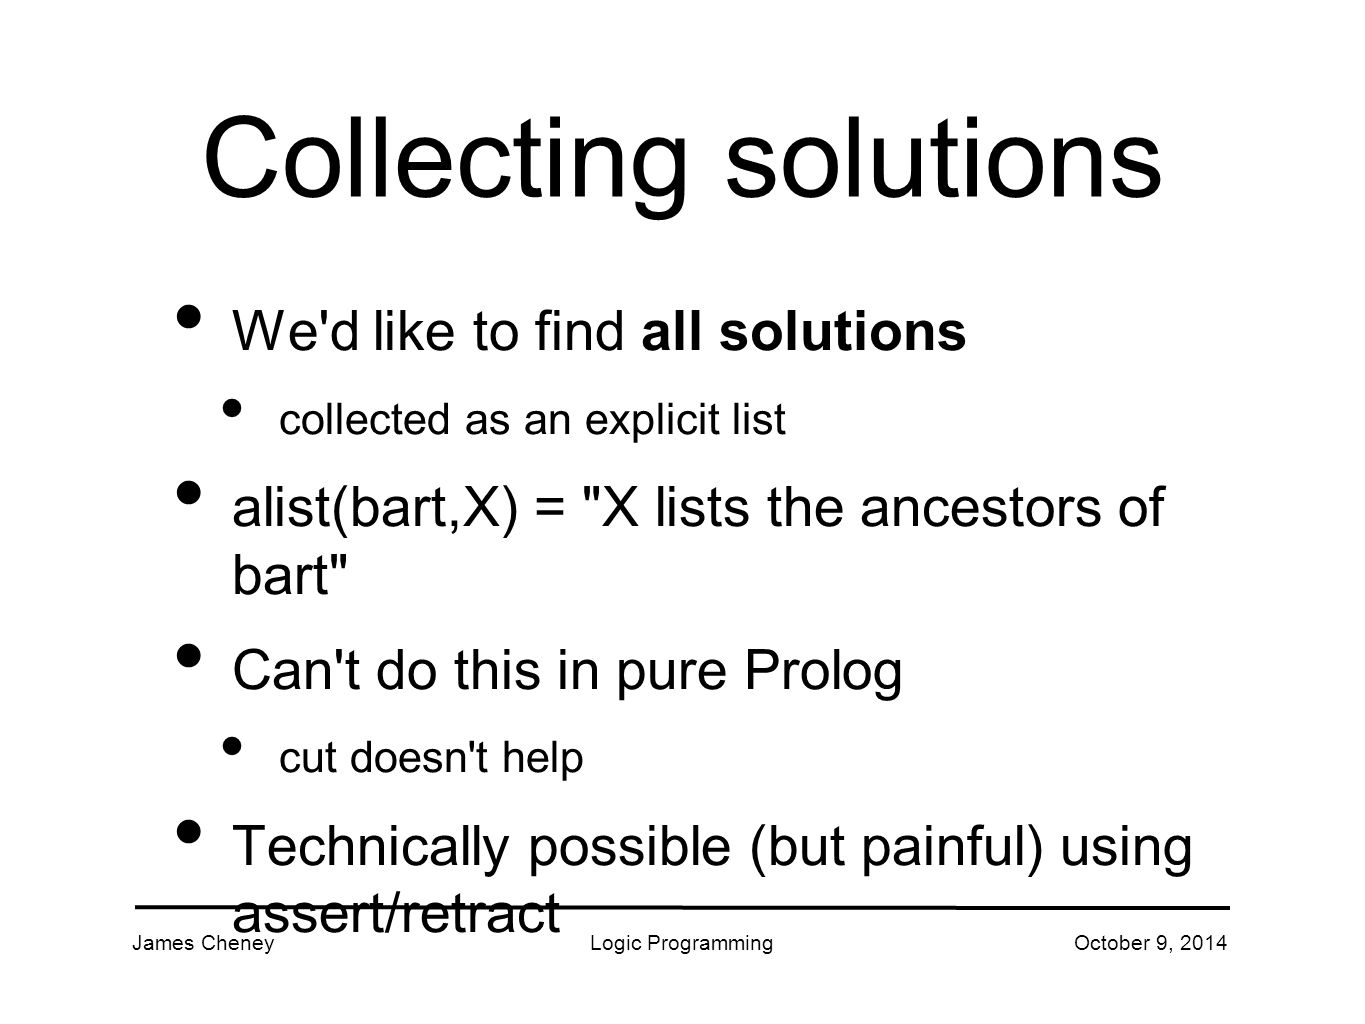 James CheneyLogic ProgrammingOctober 9, 2014 Collecting solutions We d like to find all solutions collected as an explicit list alist(bart,X) = X lists the ancestors of bart Can t do this in pure Prolog cut doesn t help Technically possible (but painful) using assert/retract